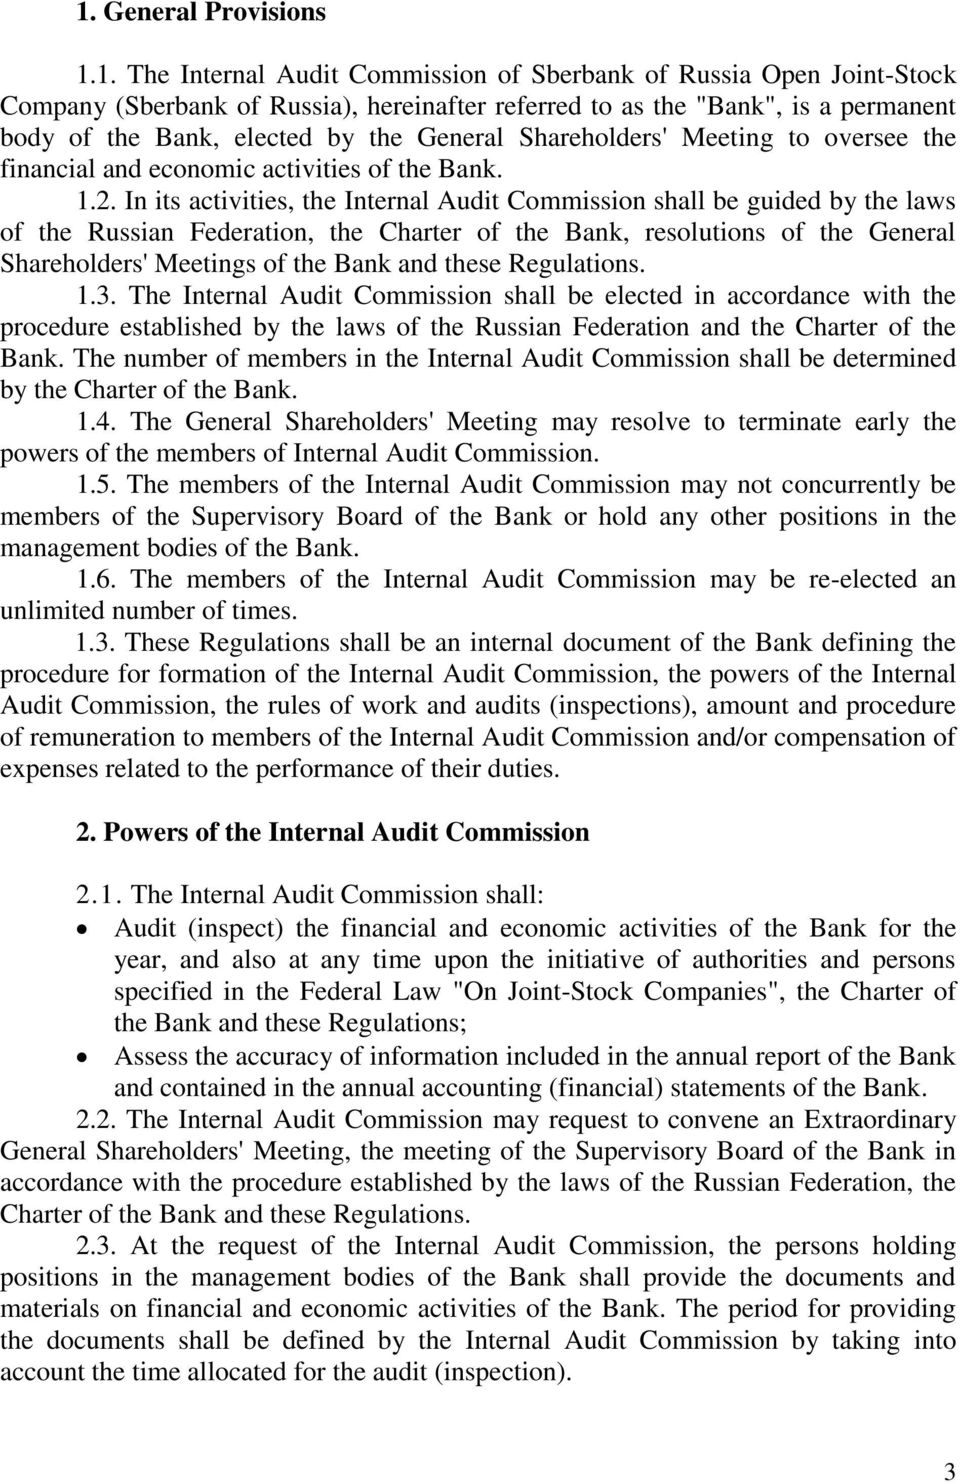 In its activities, the Internal Audit Commission shall be guided by the laws of the Russian Federation, the Charter of the Bank, resolutions of the General Shareholders' Meetings of the Bank and